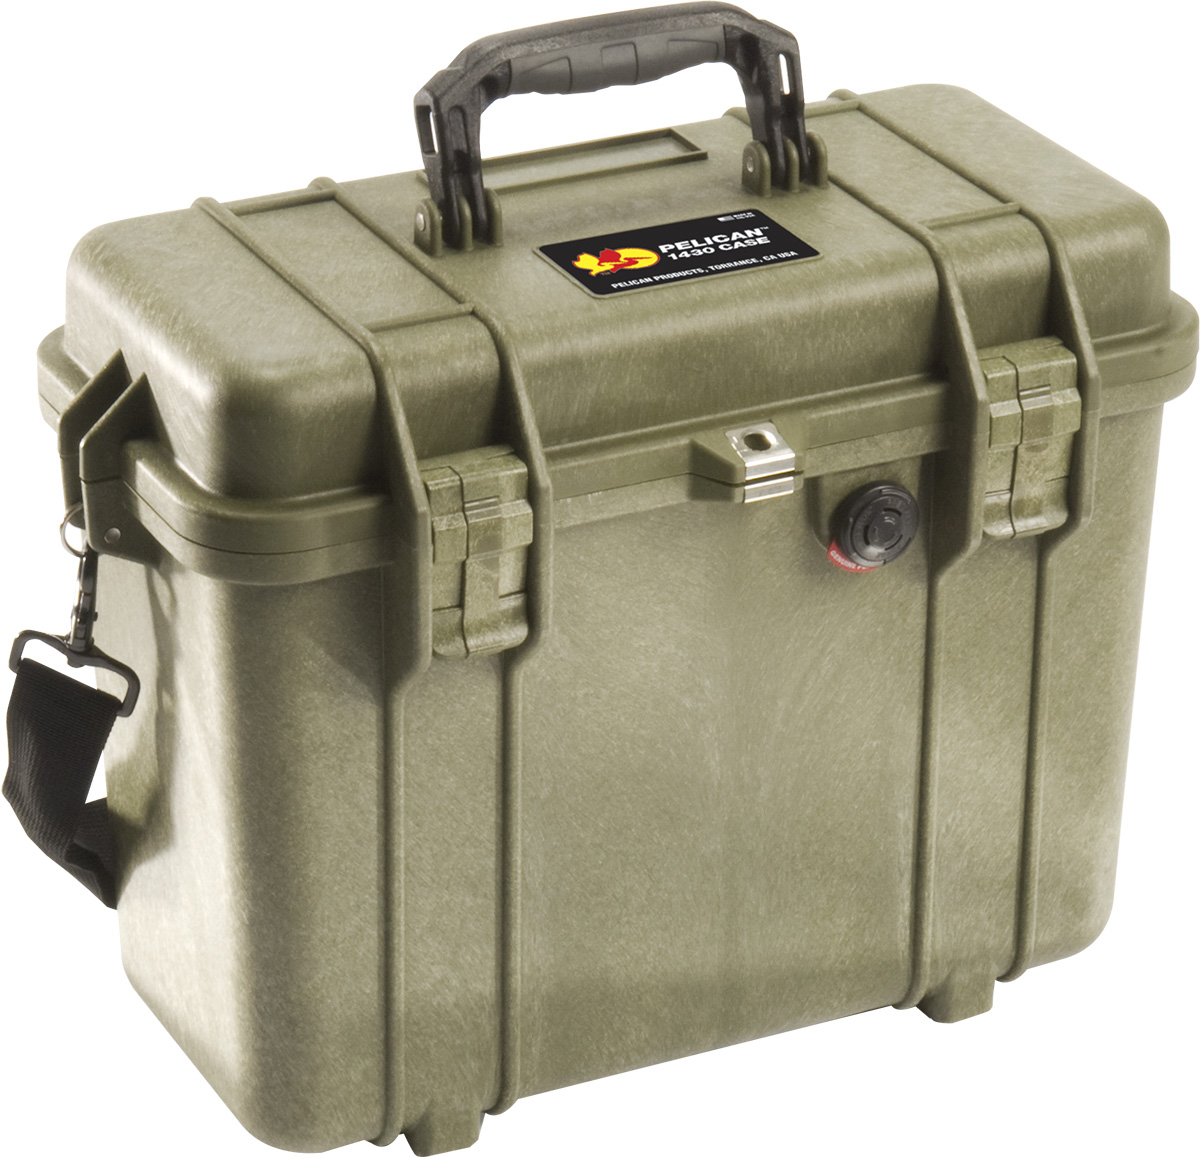 pelican 1430 protector case green top